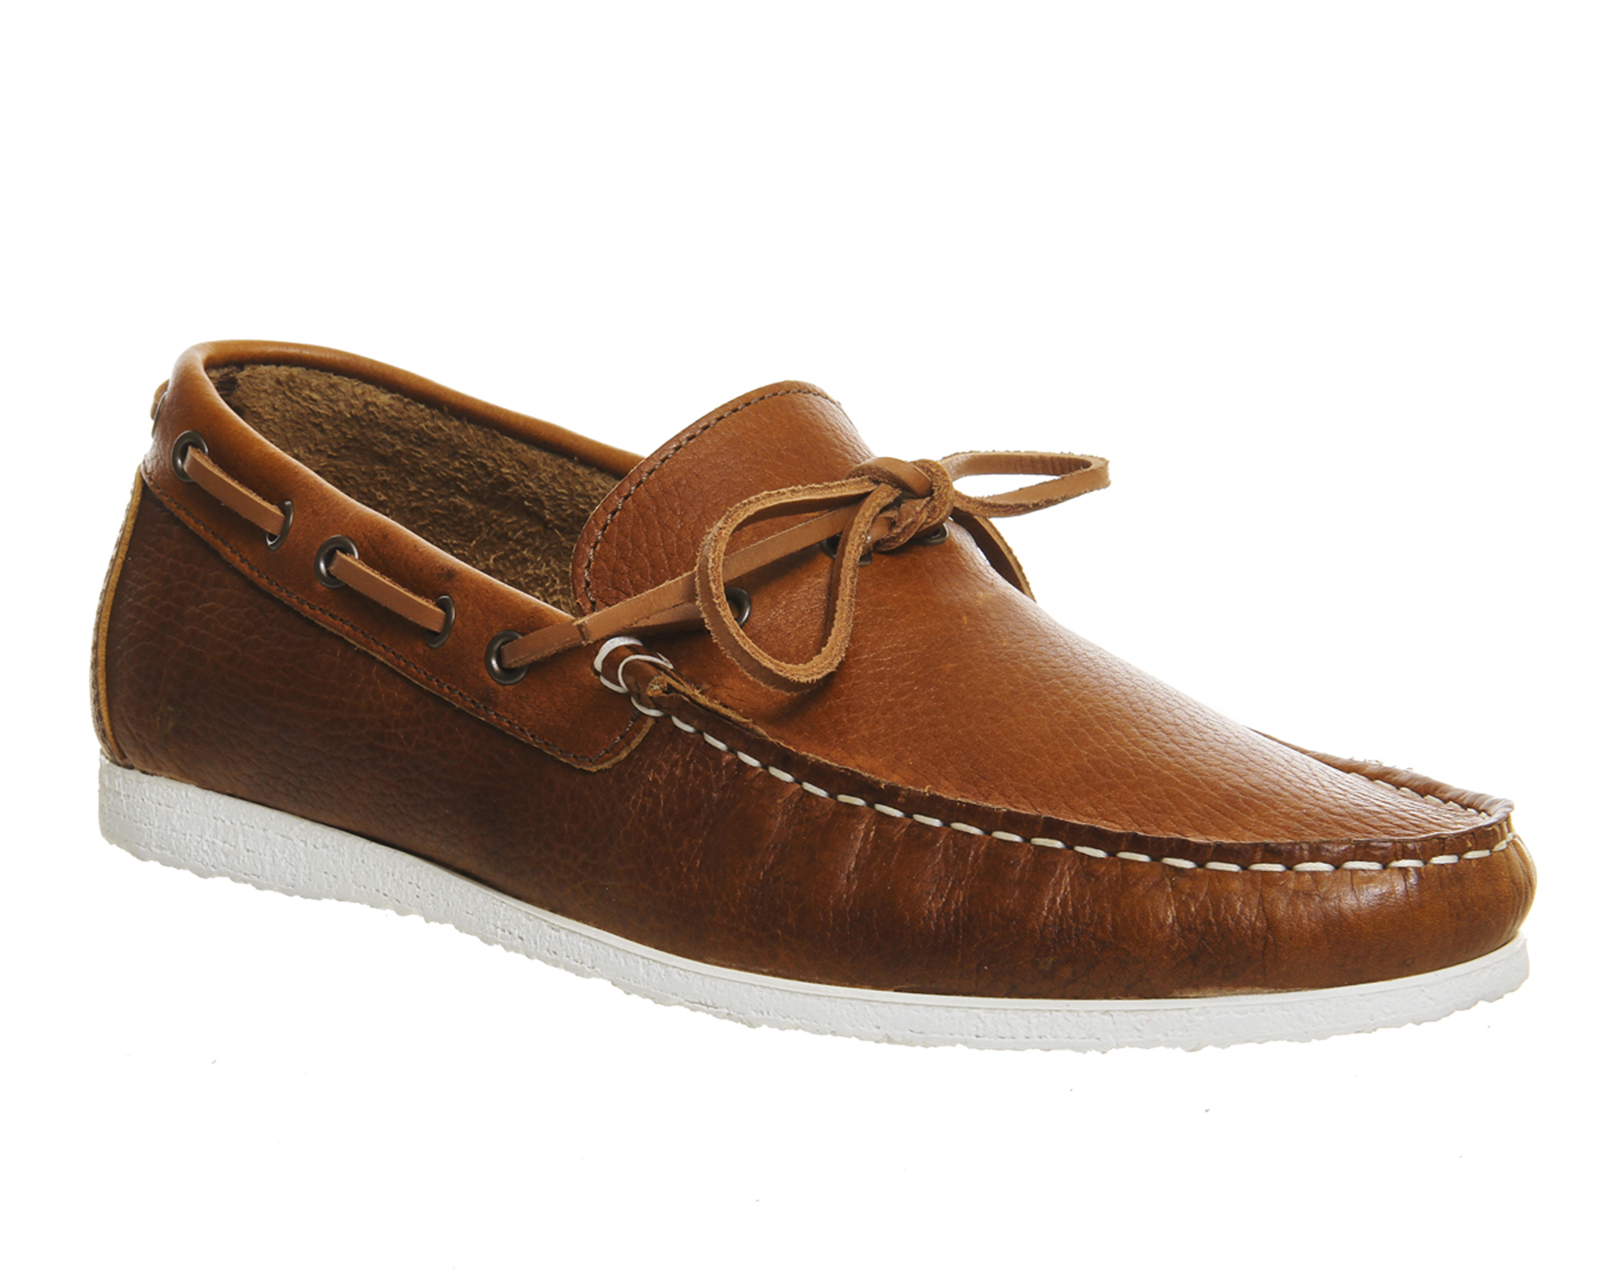 Mens Ask the Missus Draft Boat Shoes TAN LEATHER Formal ...